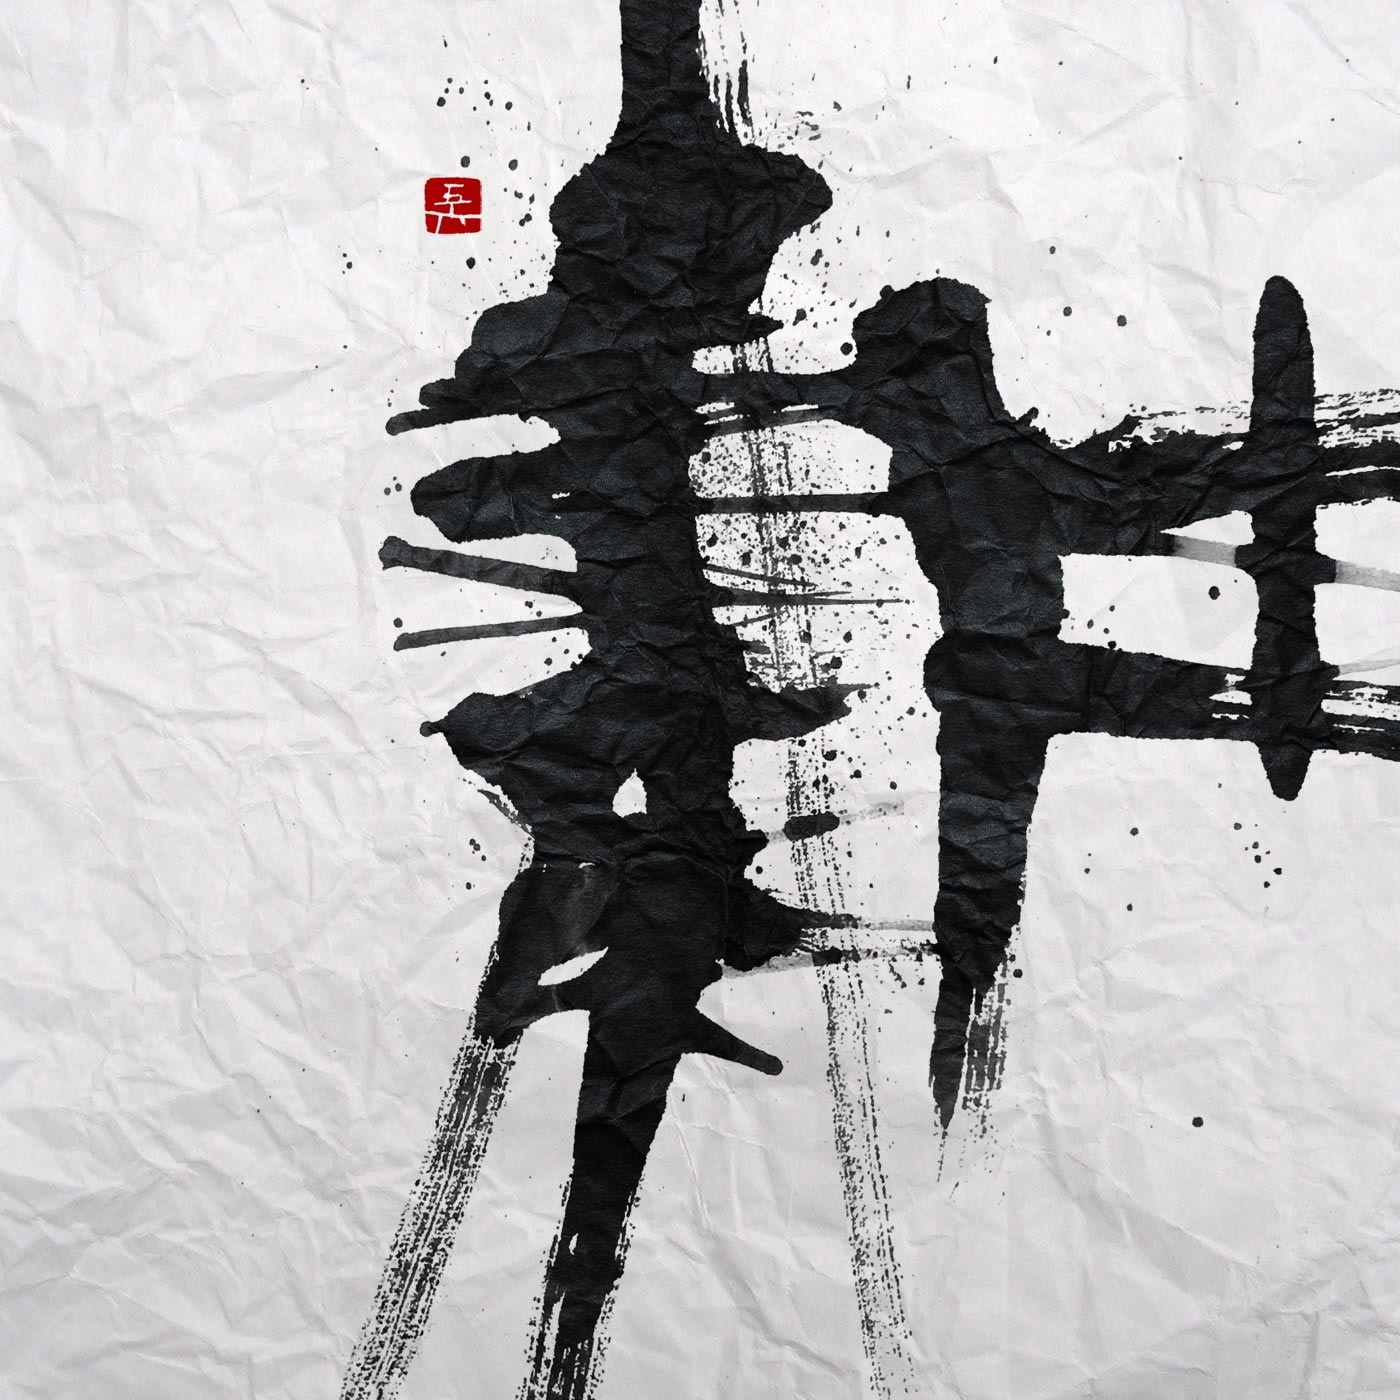 力耕 diligence 書道作品 japaneseart japanesecalligraphy